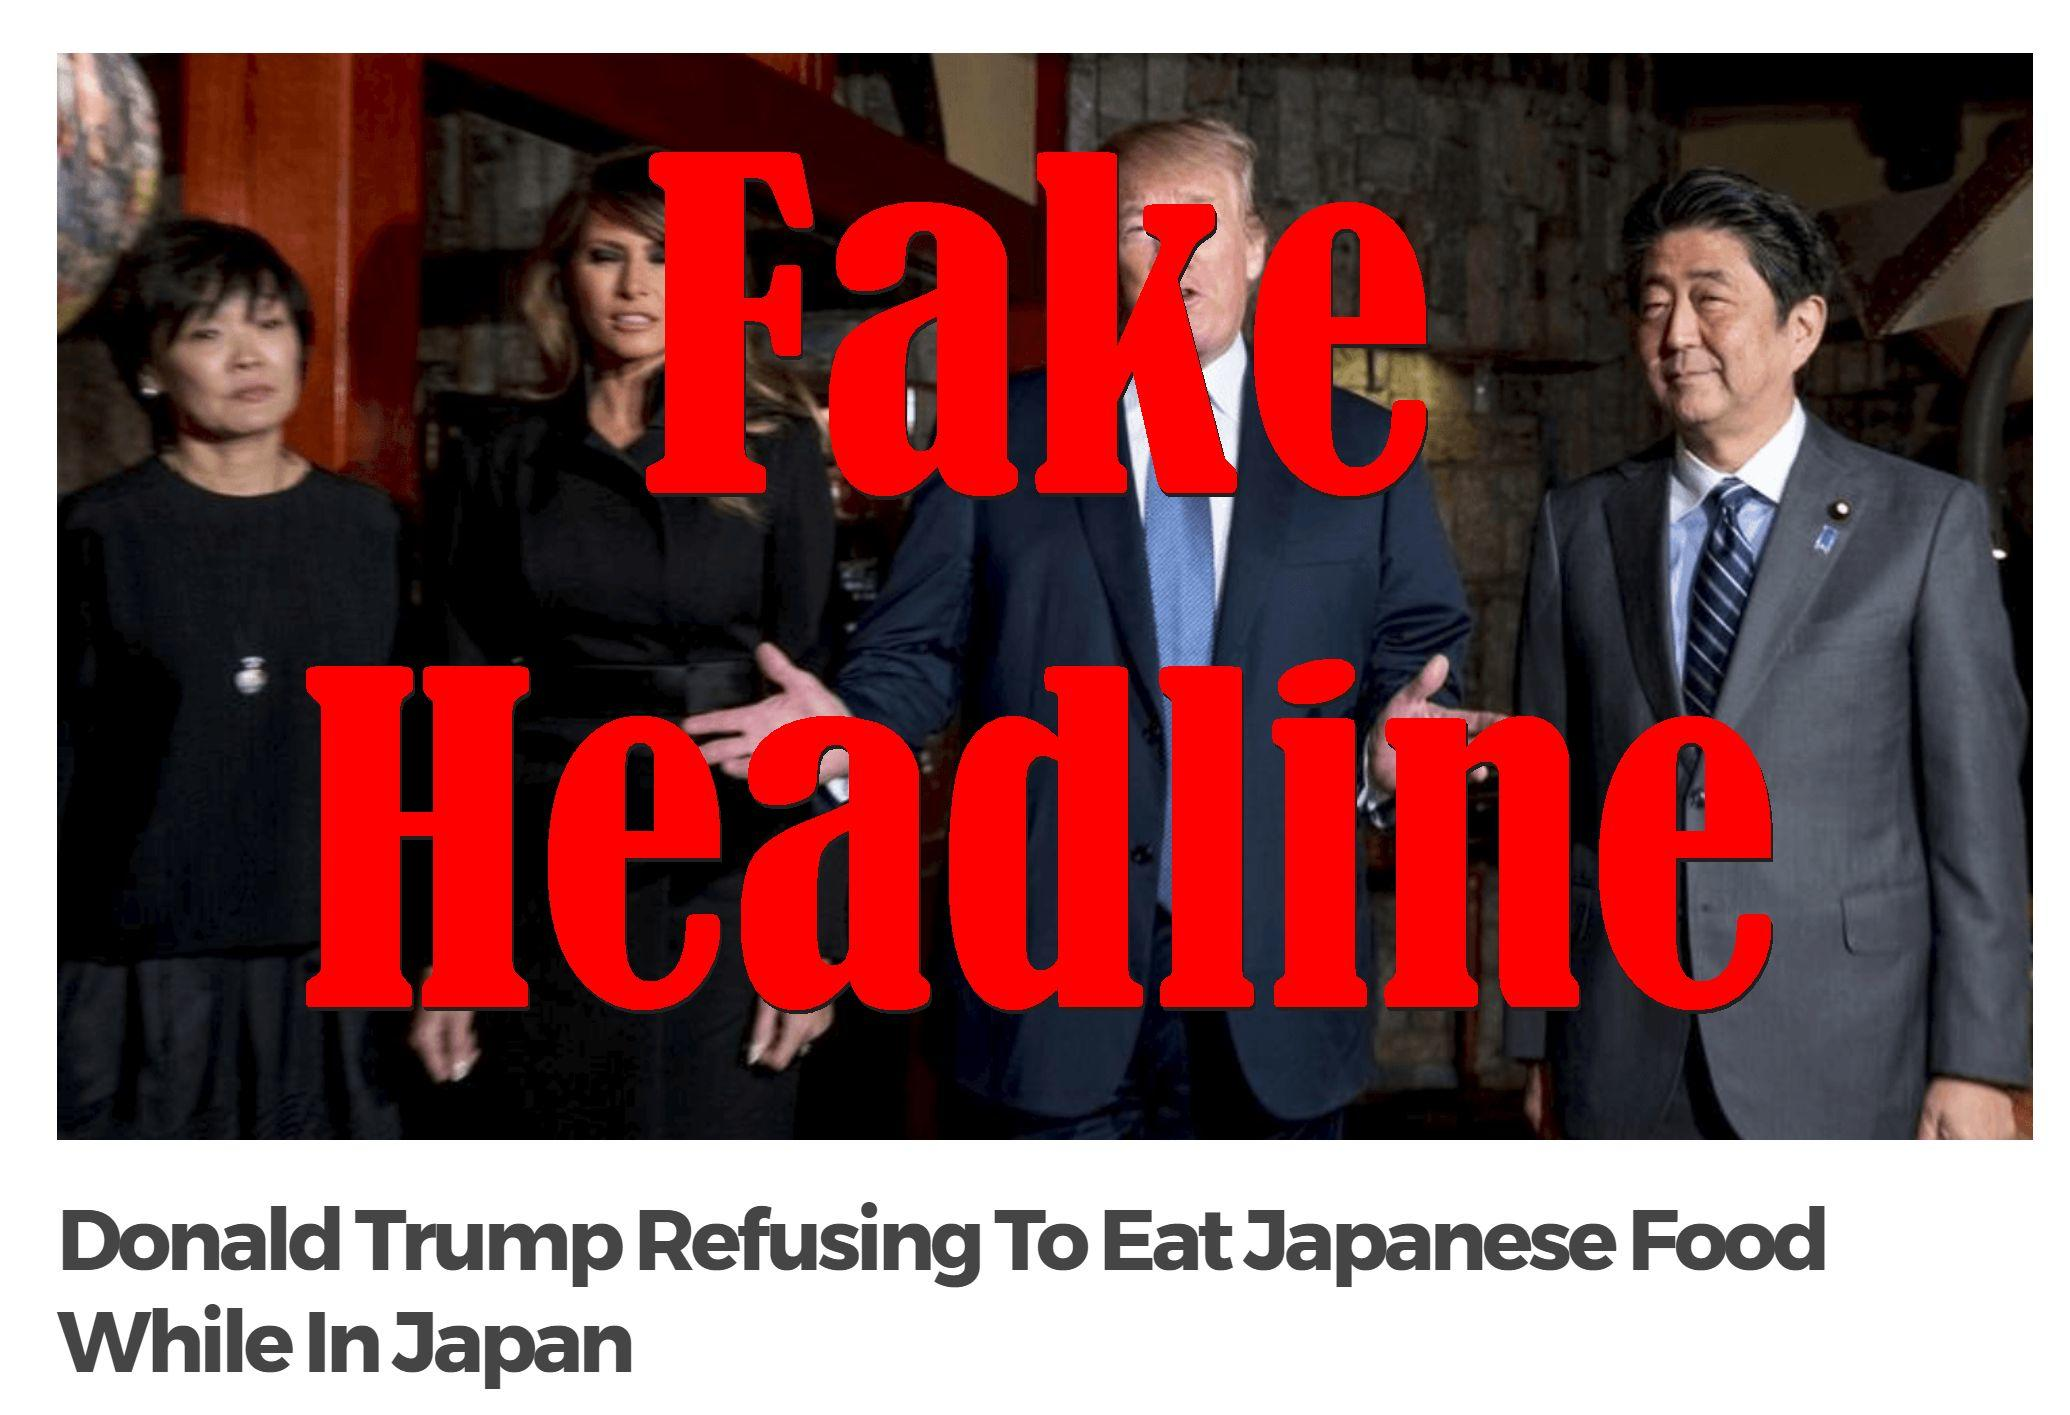 Fake News: Donald Trump NOT Refusing To Eat Japanese Food While In Japan